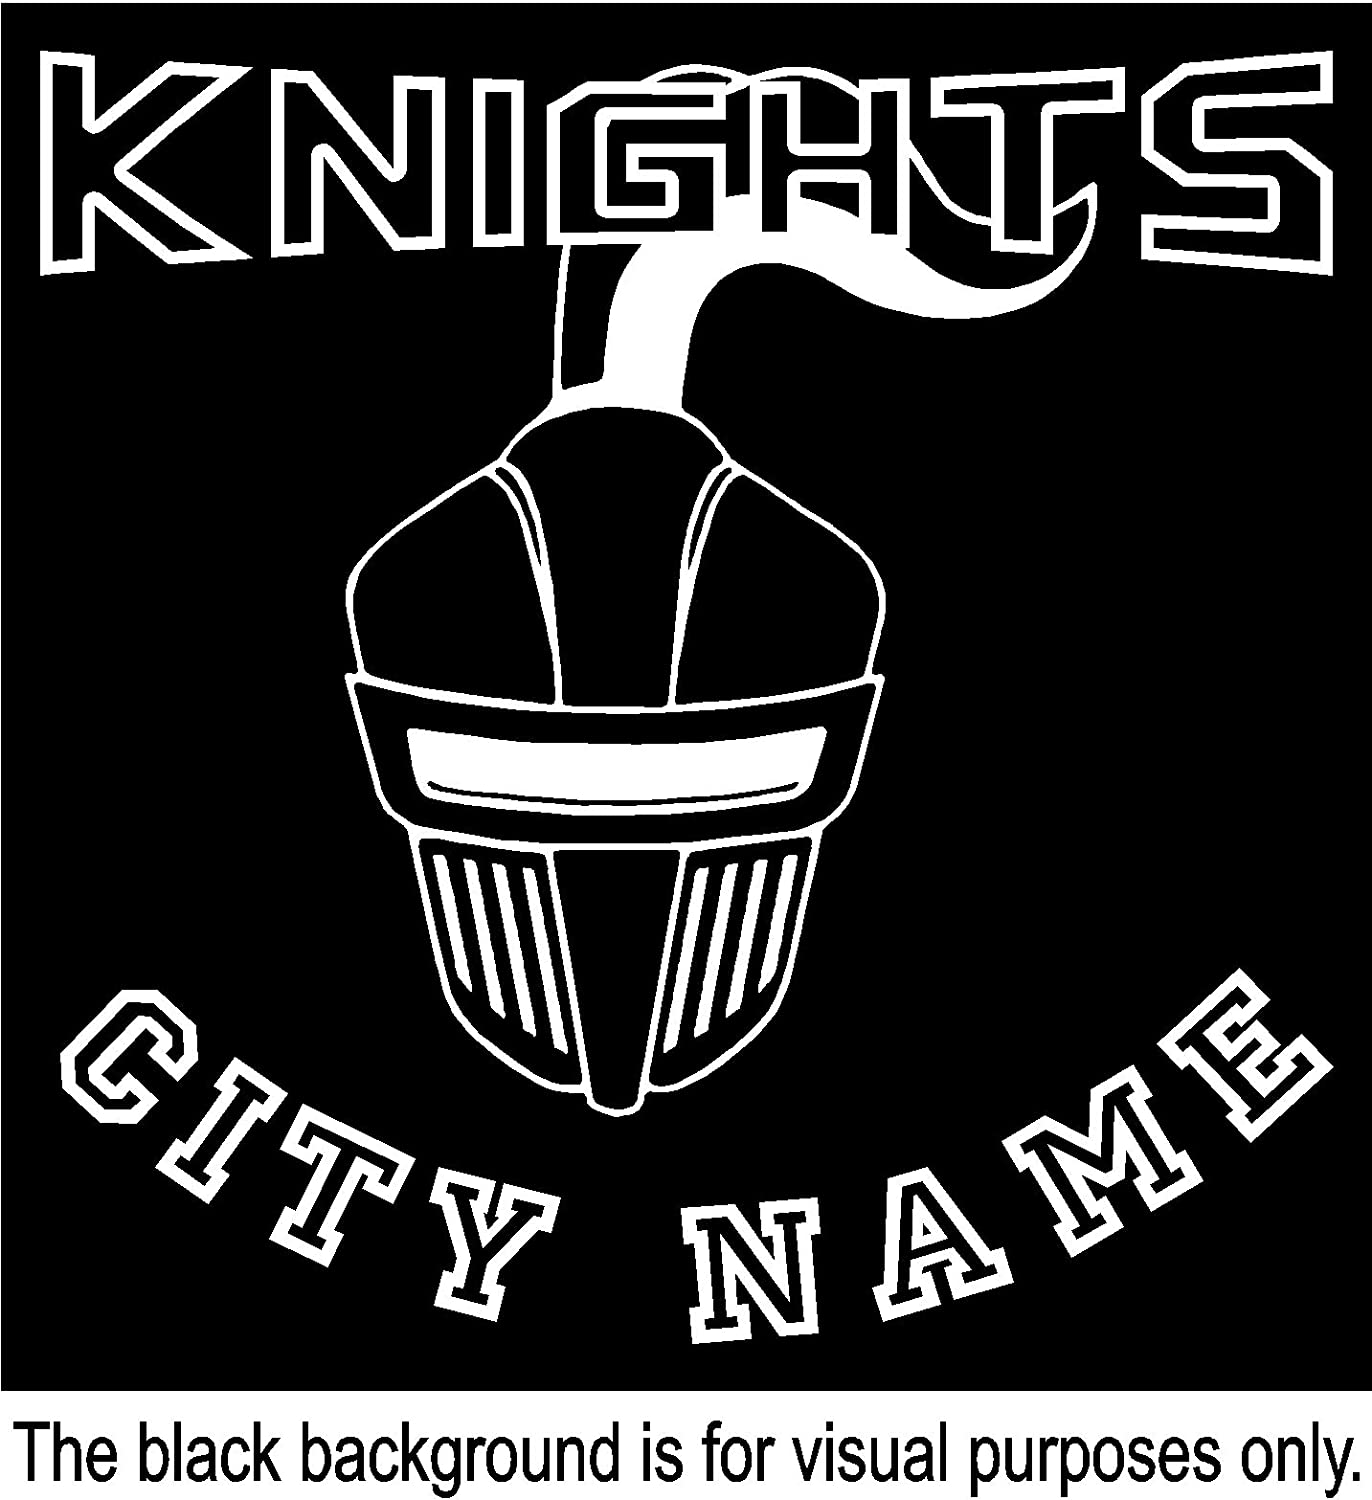 Knights Helmet Forward Sport Team Mascot City Name Custom Customize Decal Sticker Vinyl Car Window Tumblers Wall Laptops Cellphones Phones Tablets Ipads Helmets Motorcycles V and T Gifts